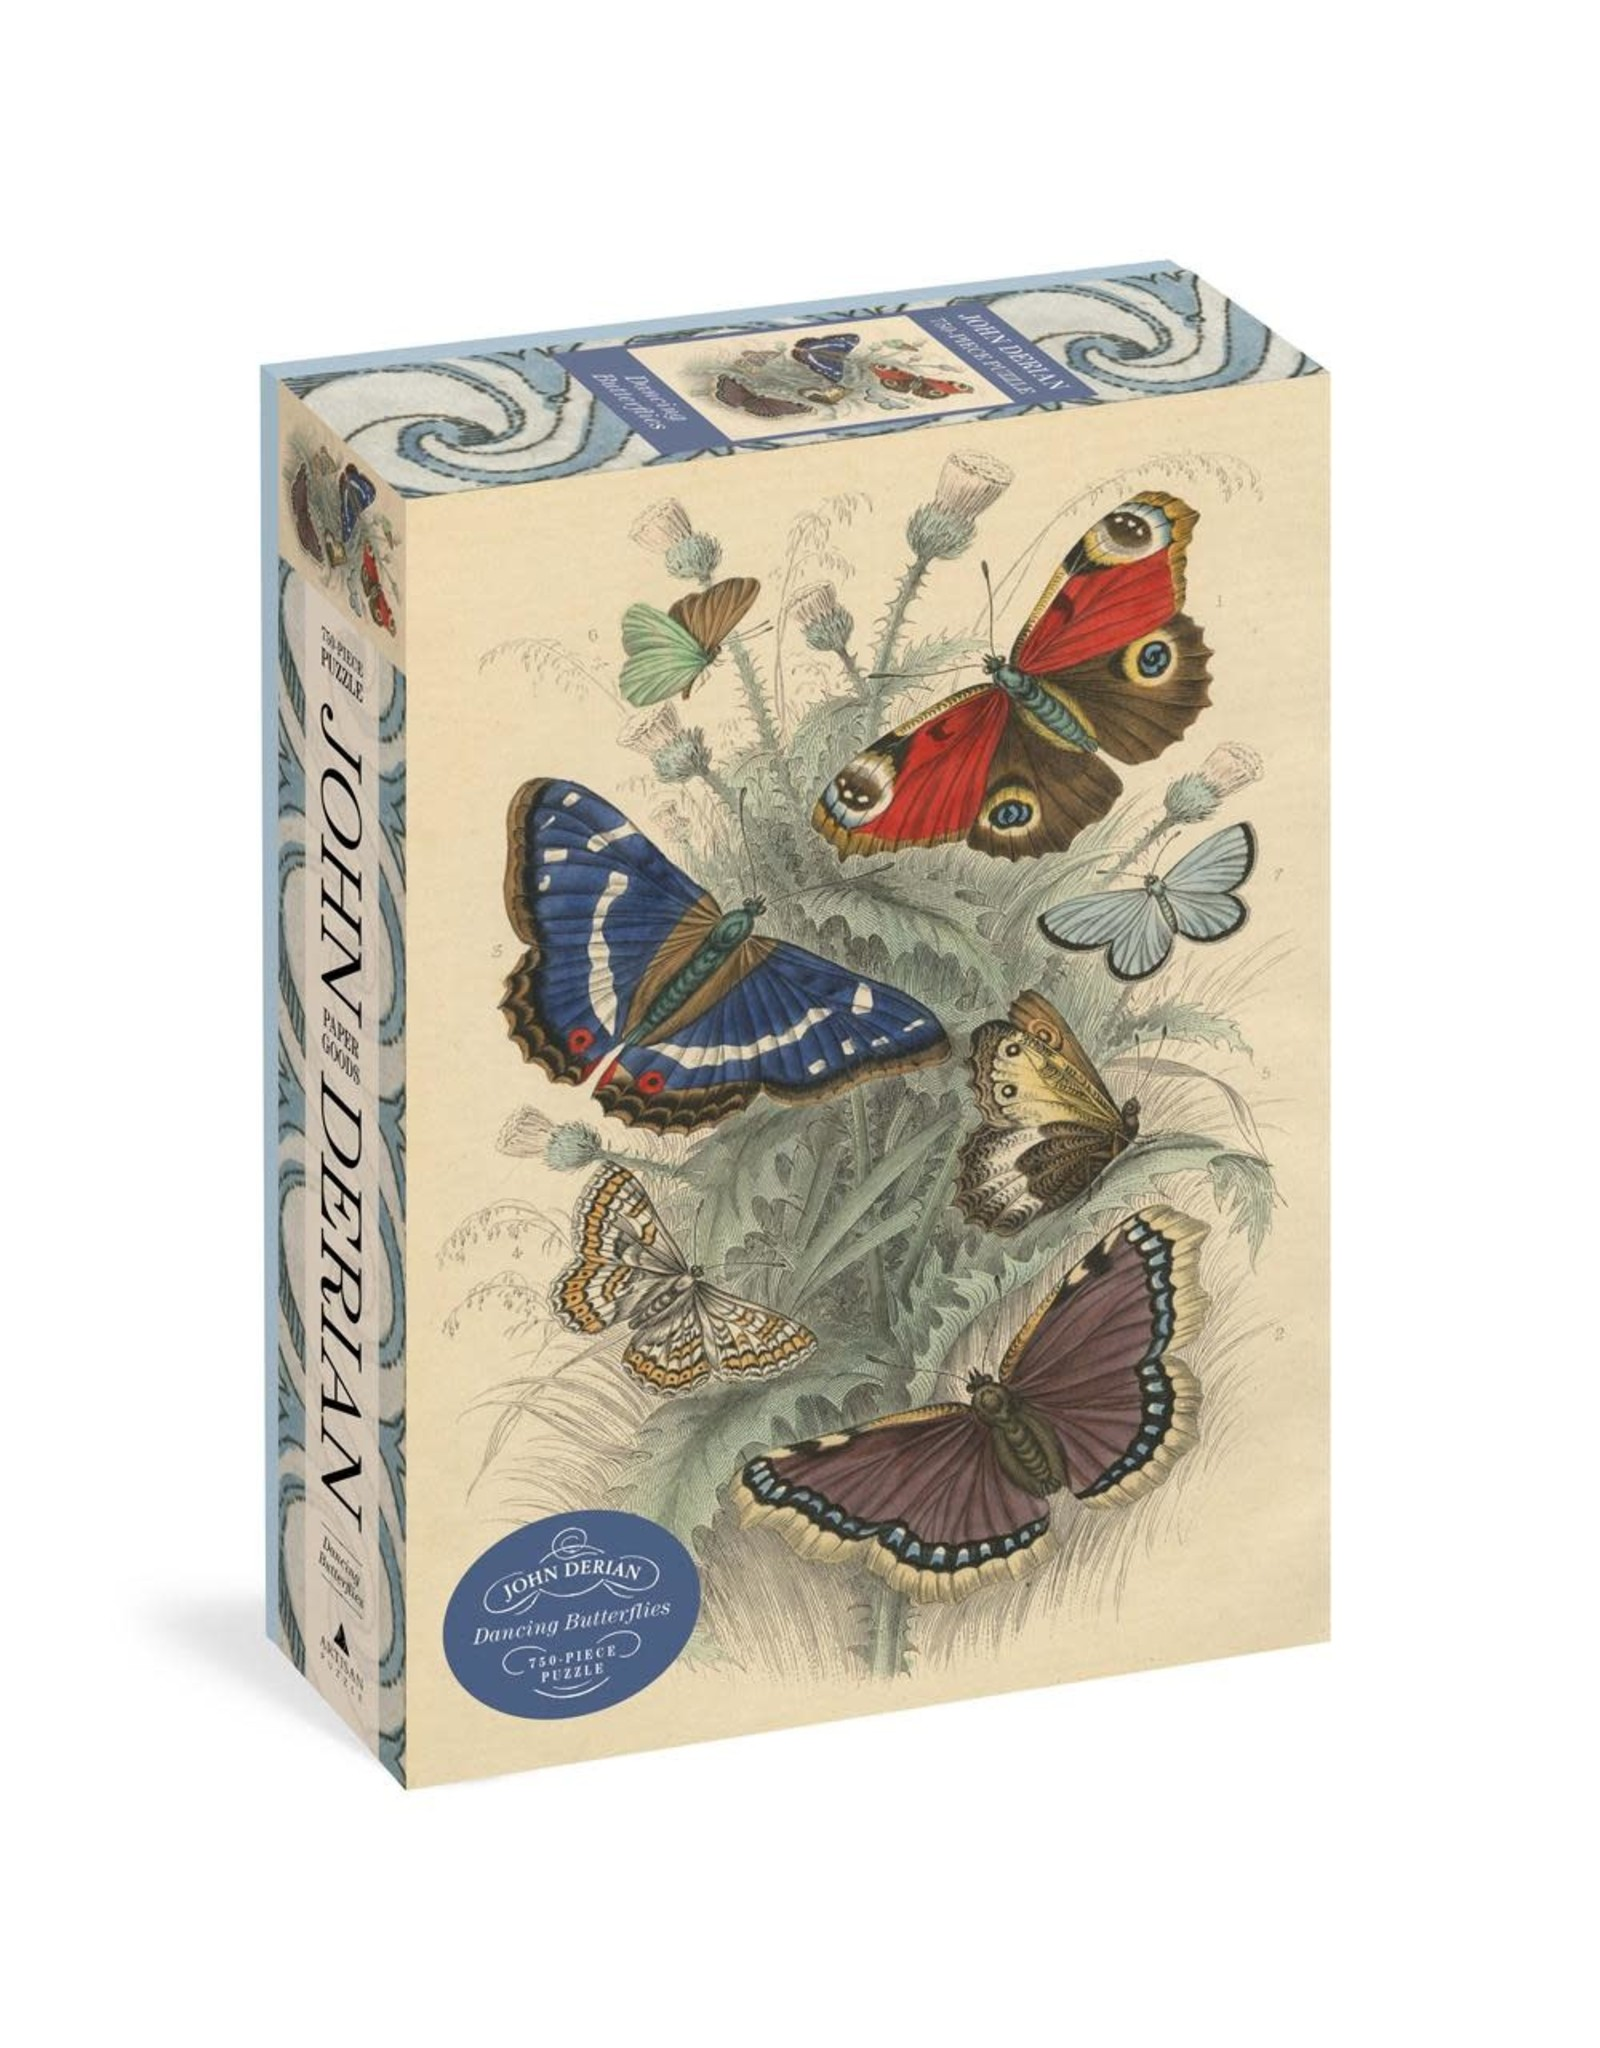 John Derian Dancing Butterflies 750 pc